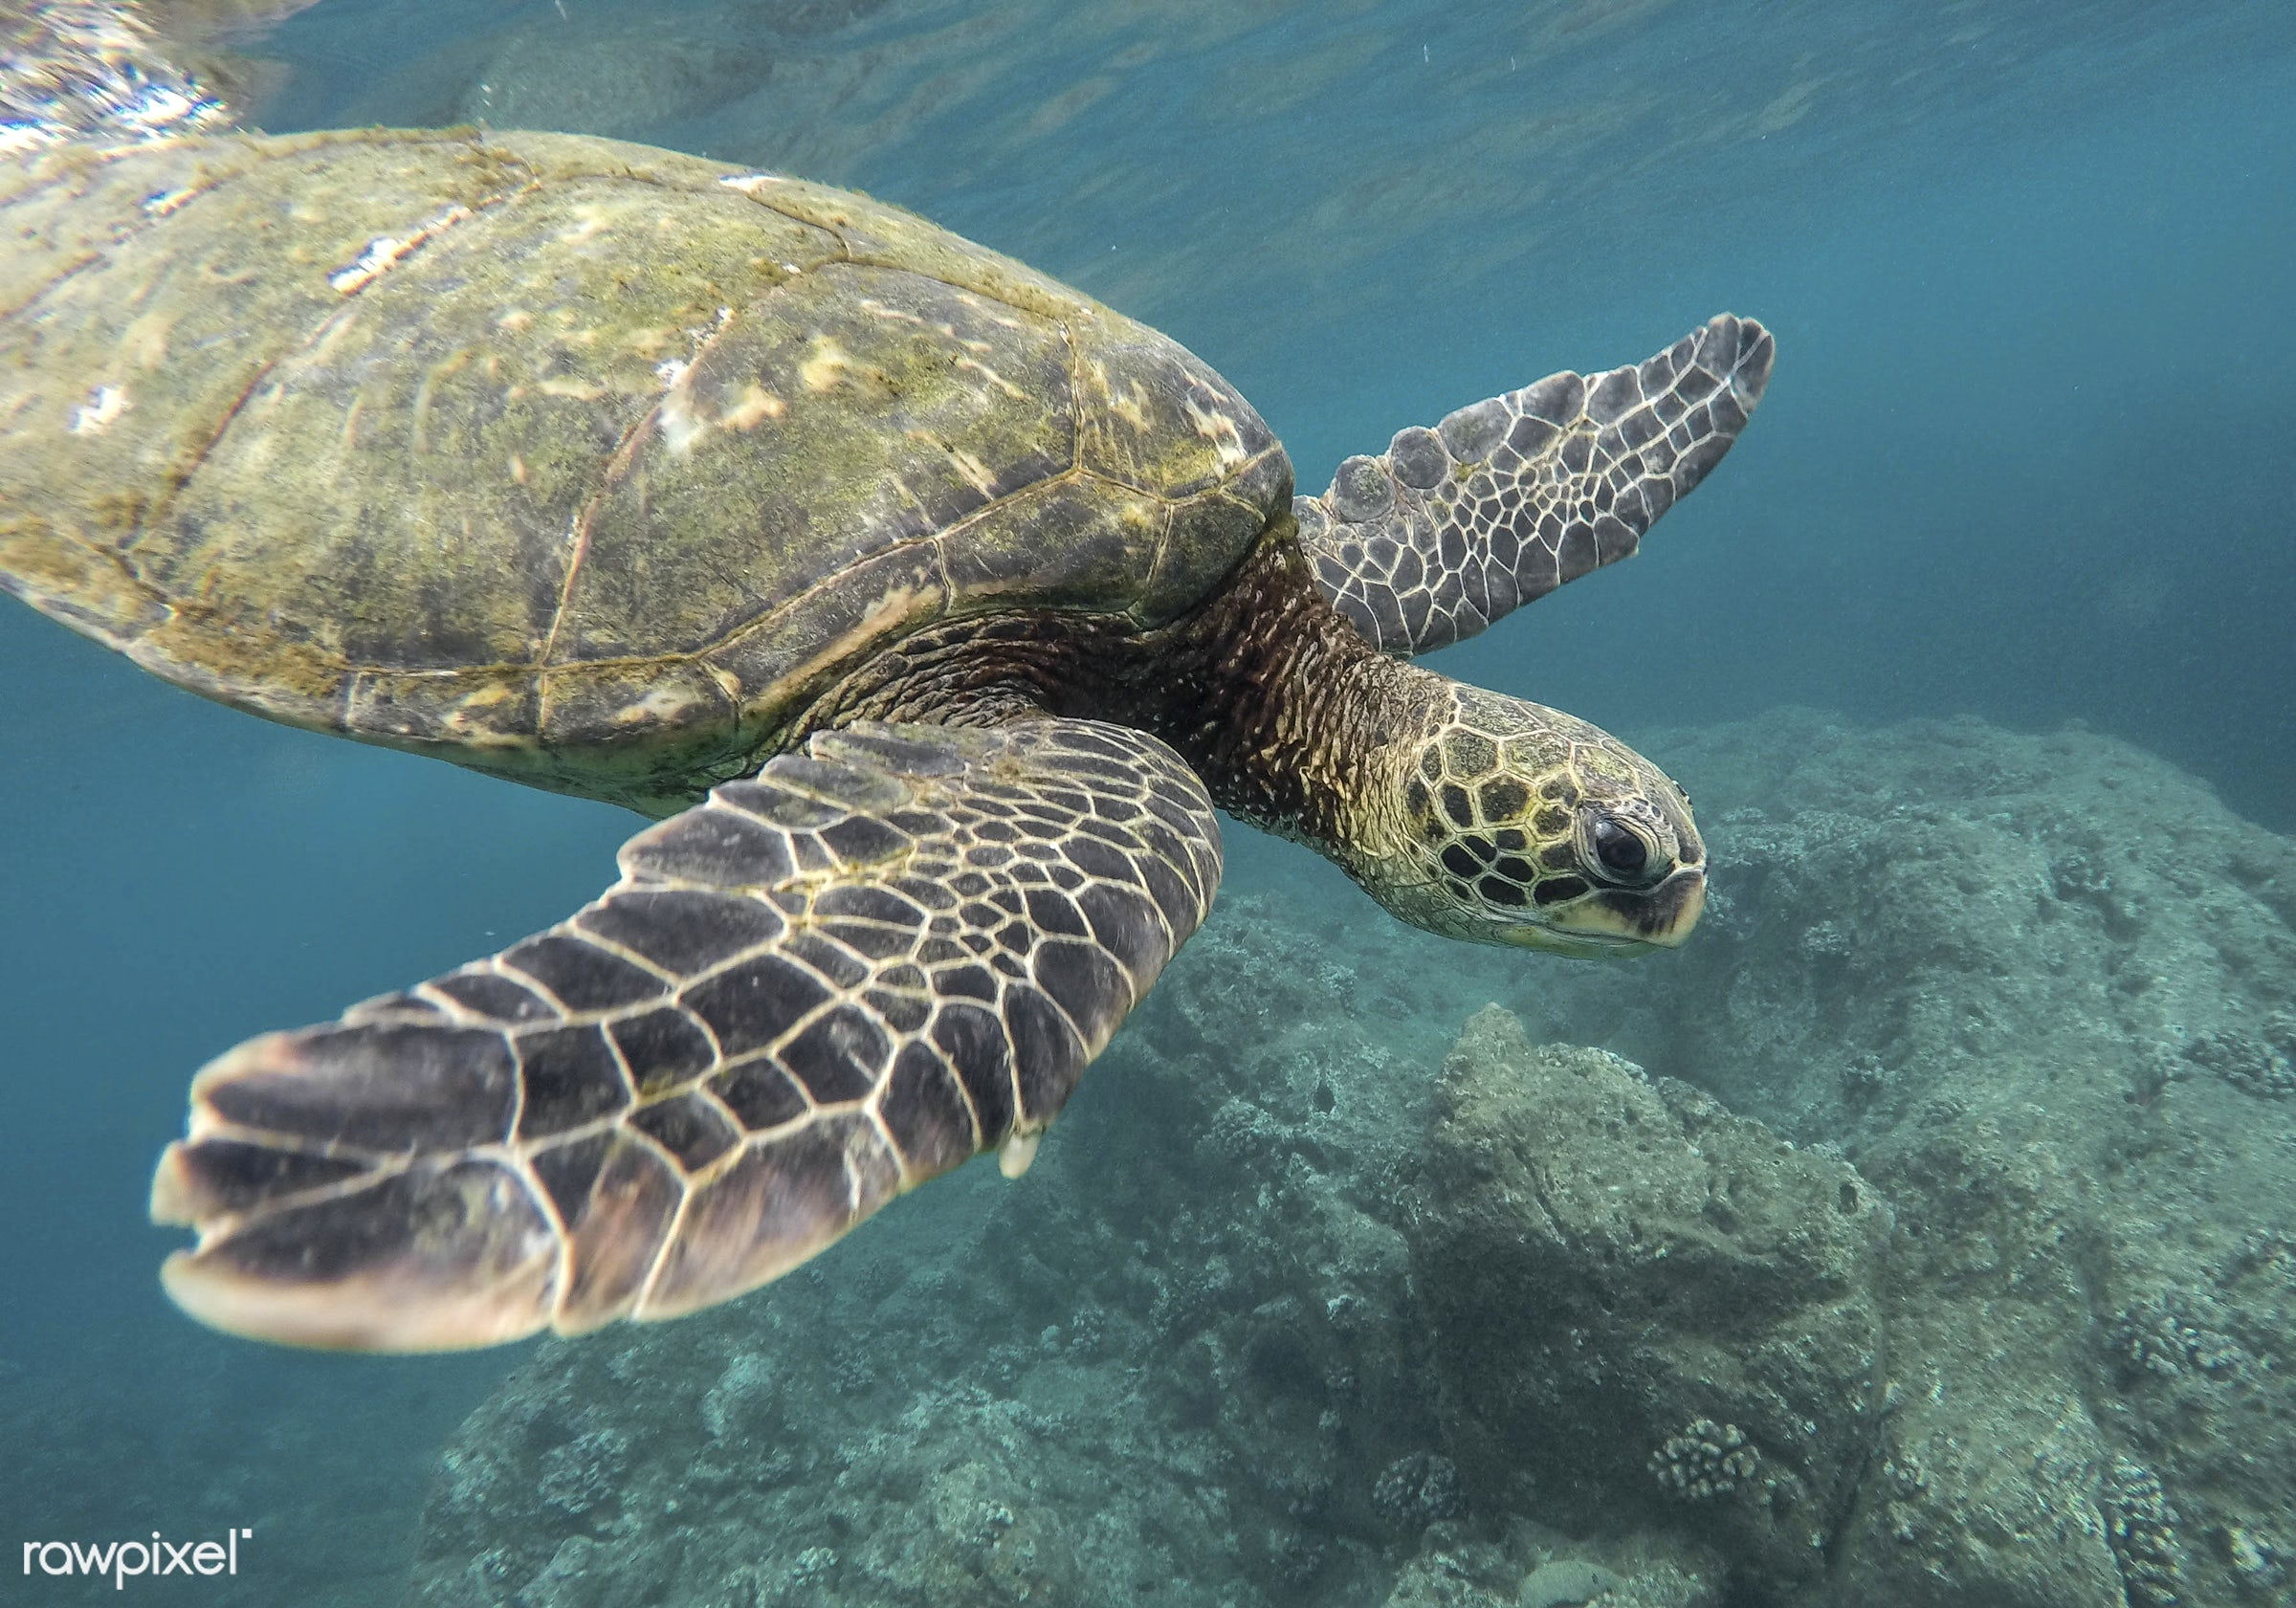 A turtle under the water in Oahu, Hawaii - turtle, ocean, wallpaper, water, america, animal, background, blue, clear, coast...